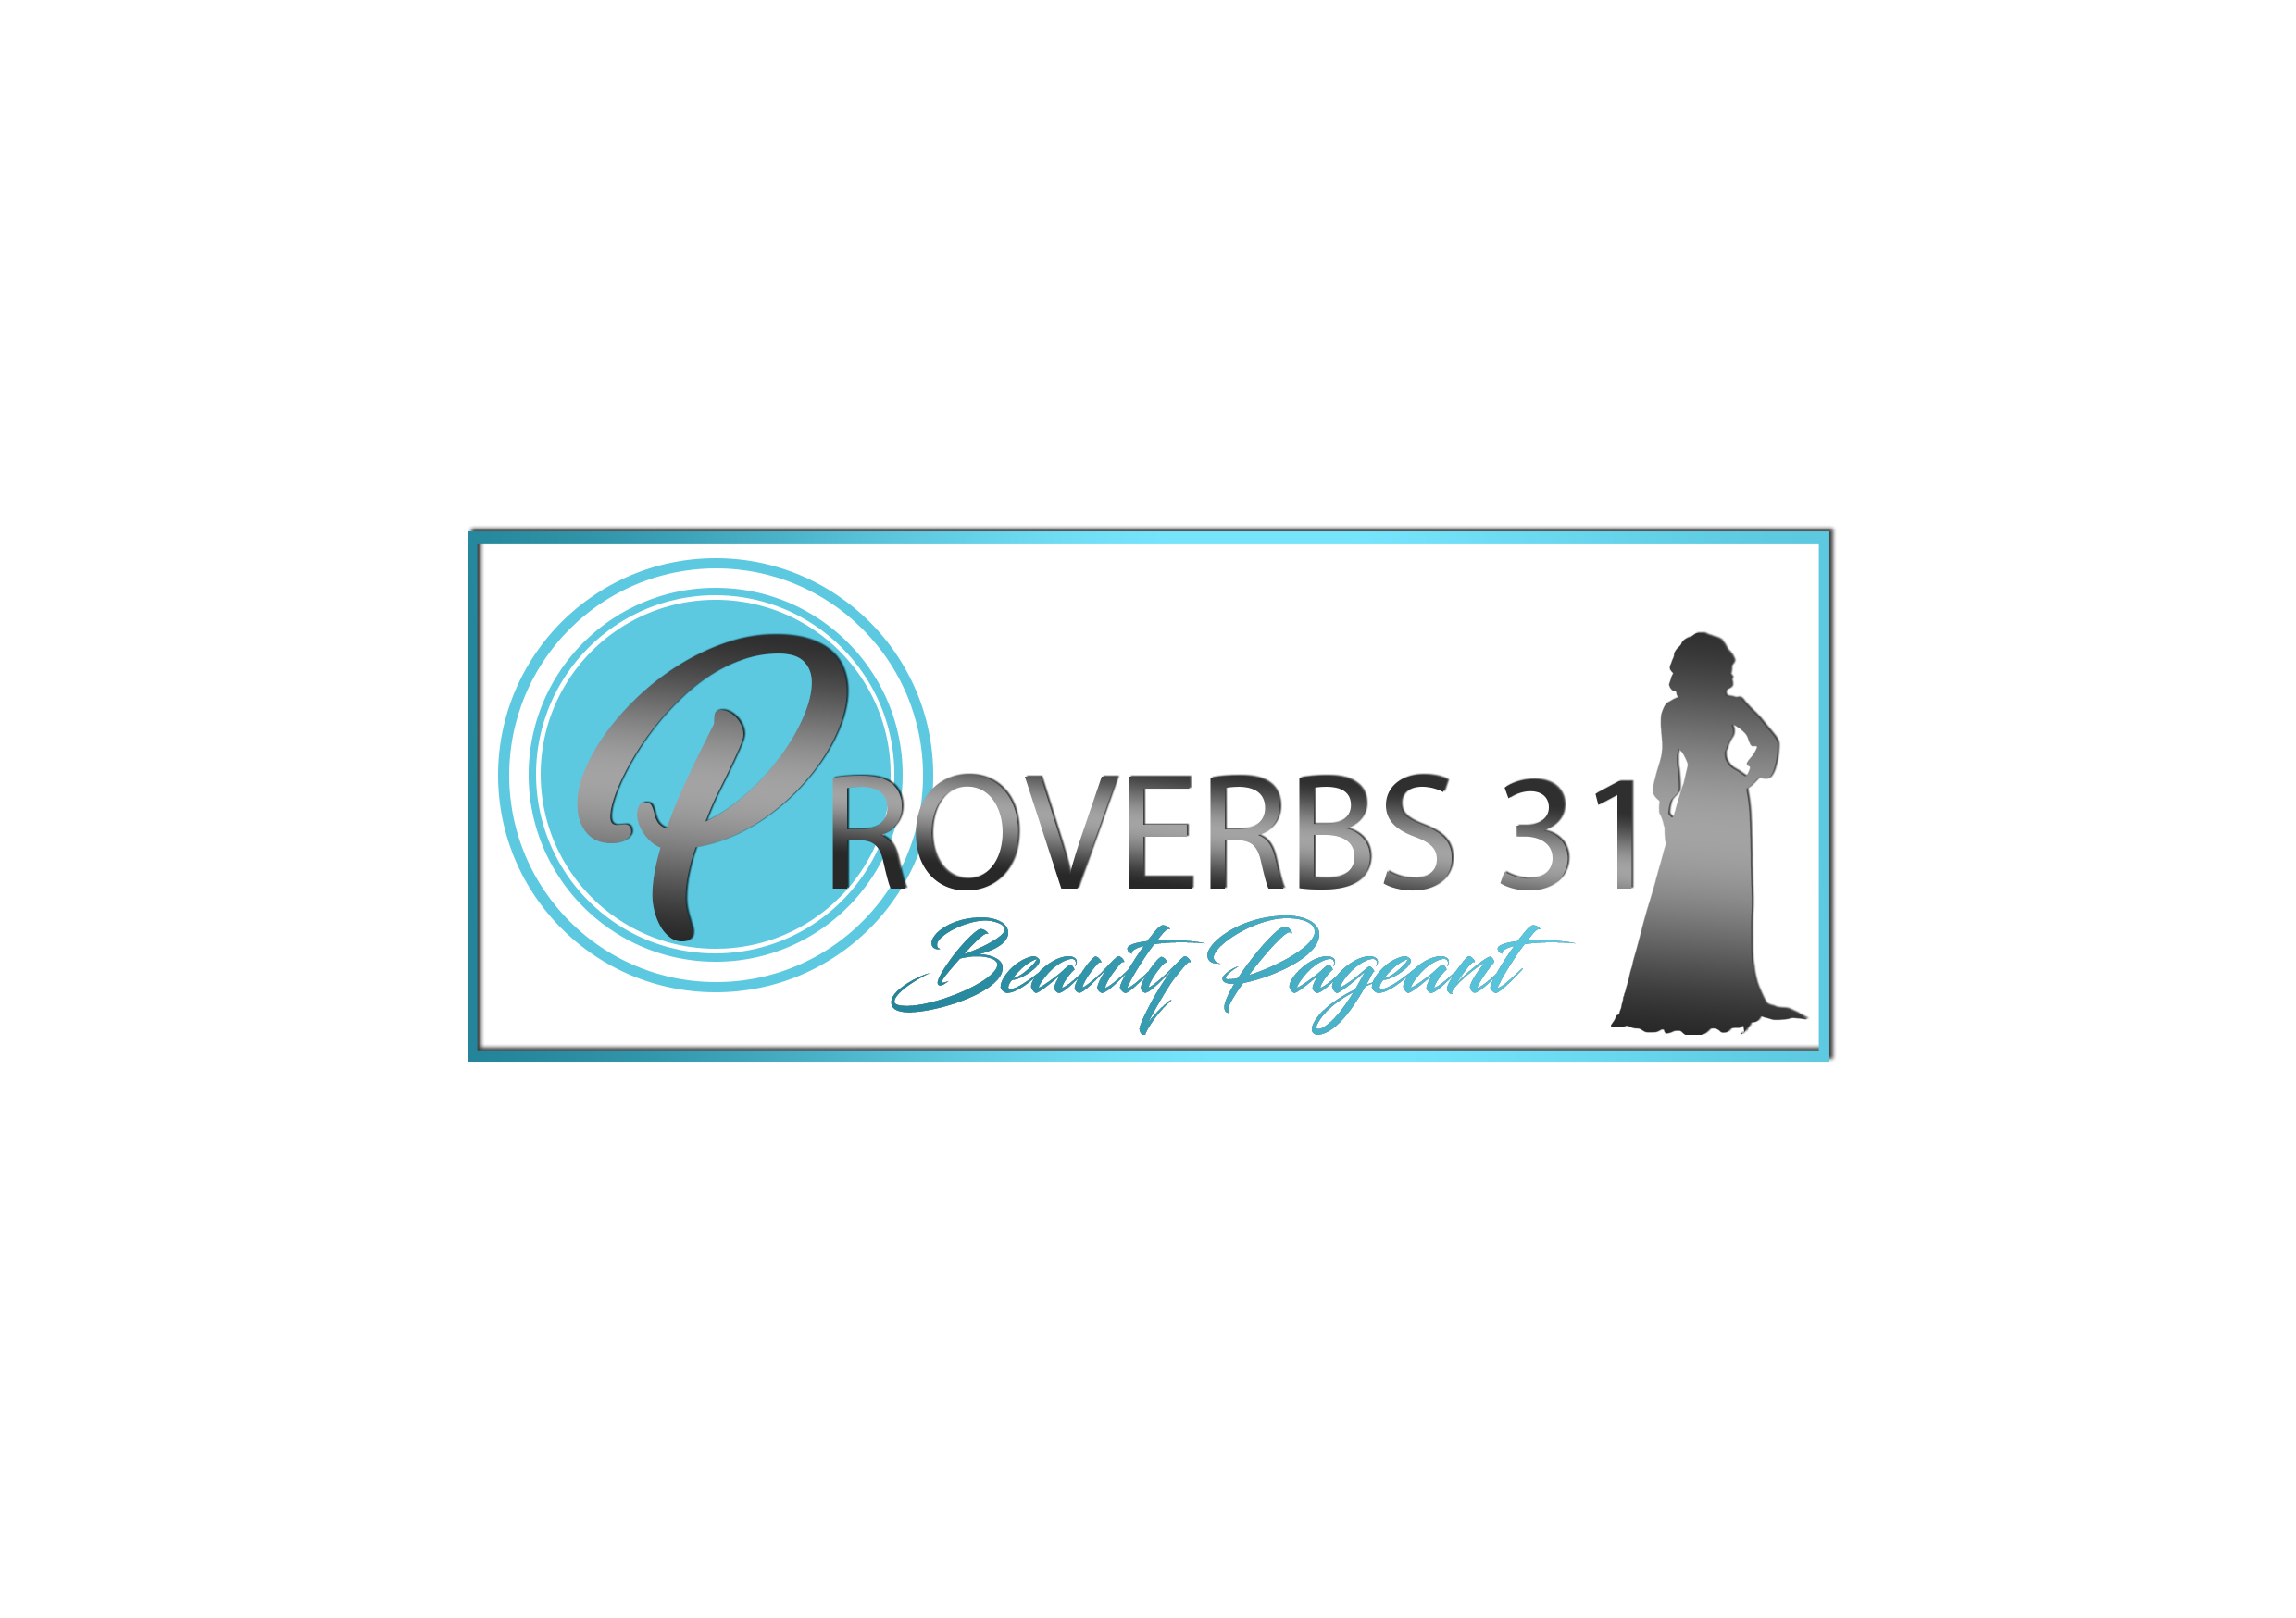 Proverbs 31 Beauty Pageant Logo